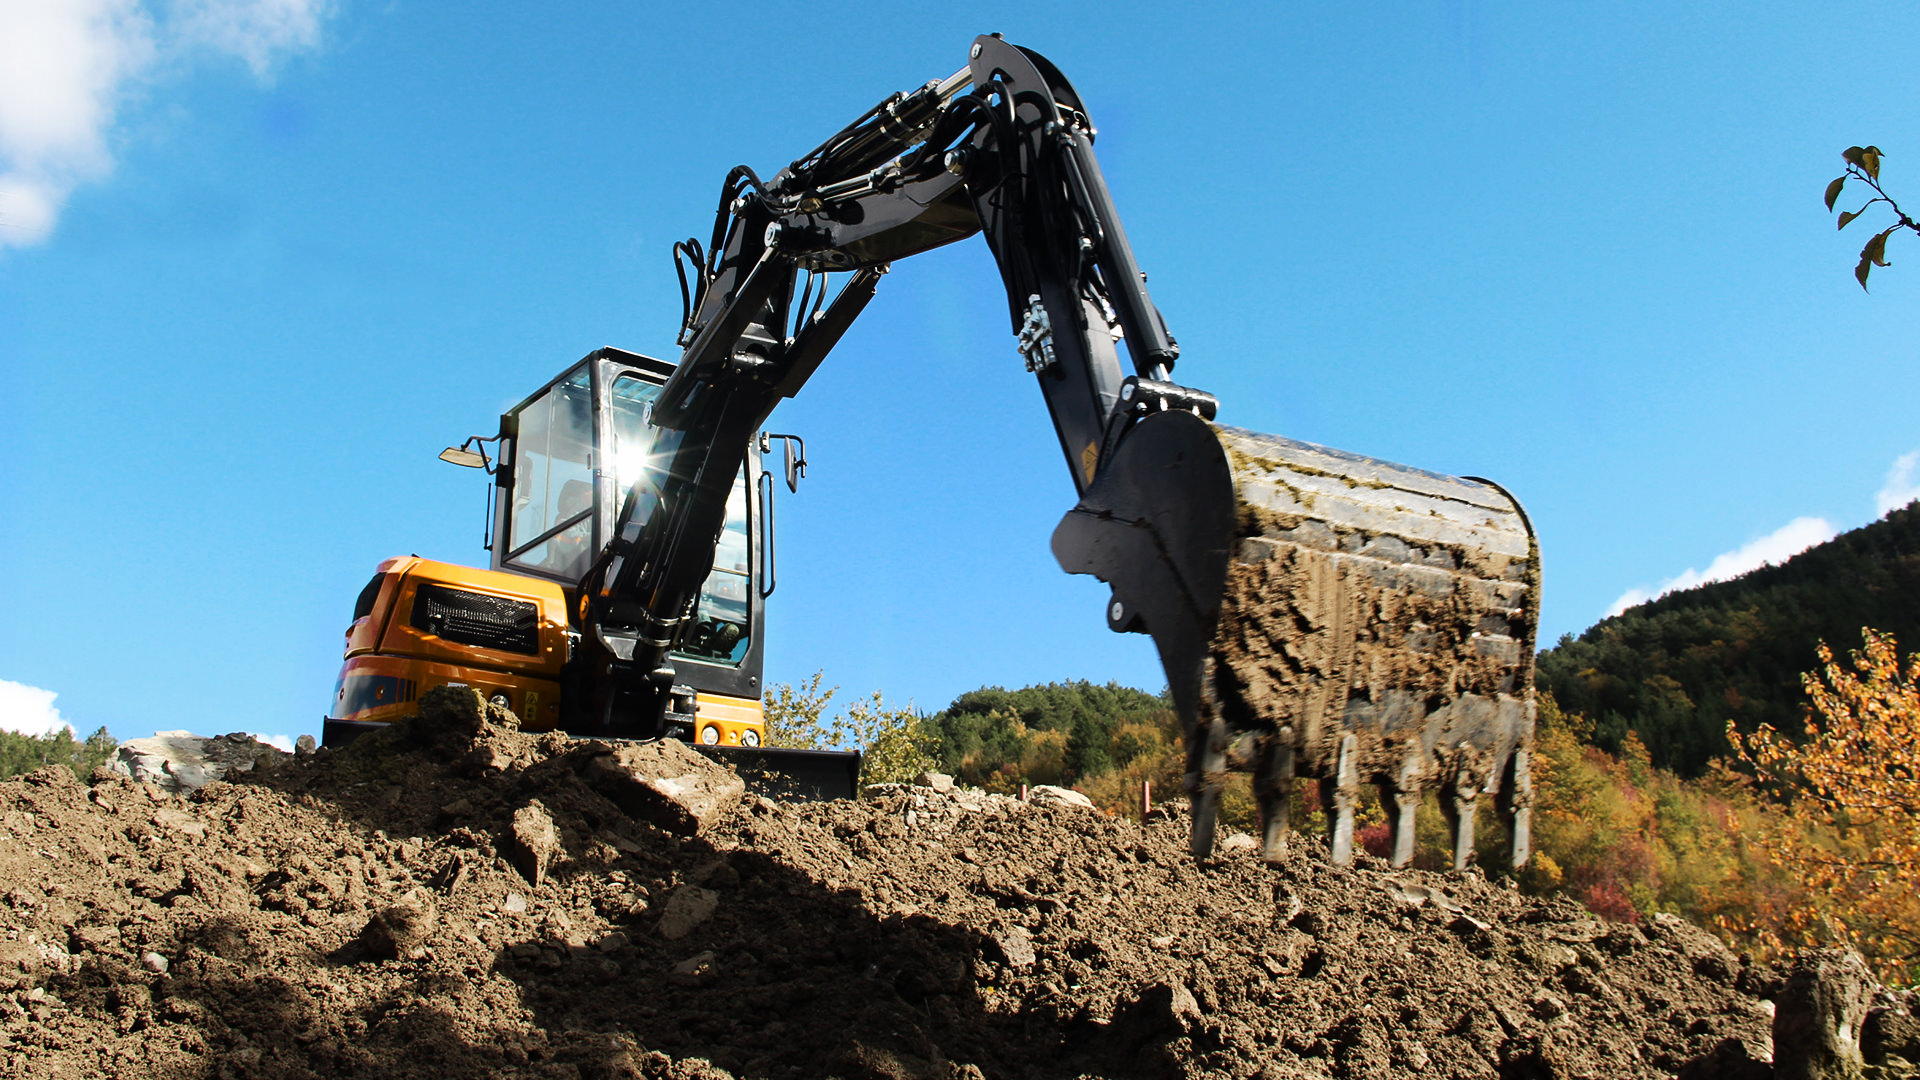 Construction machinery rental